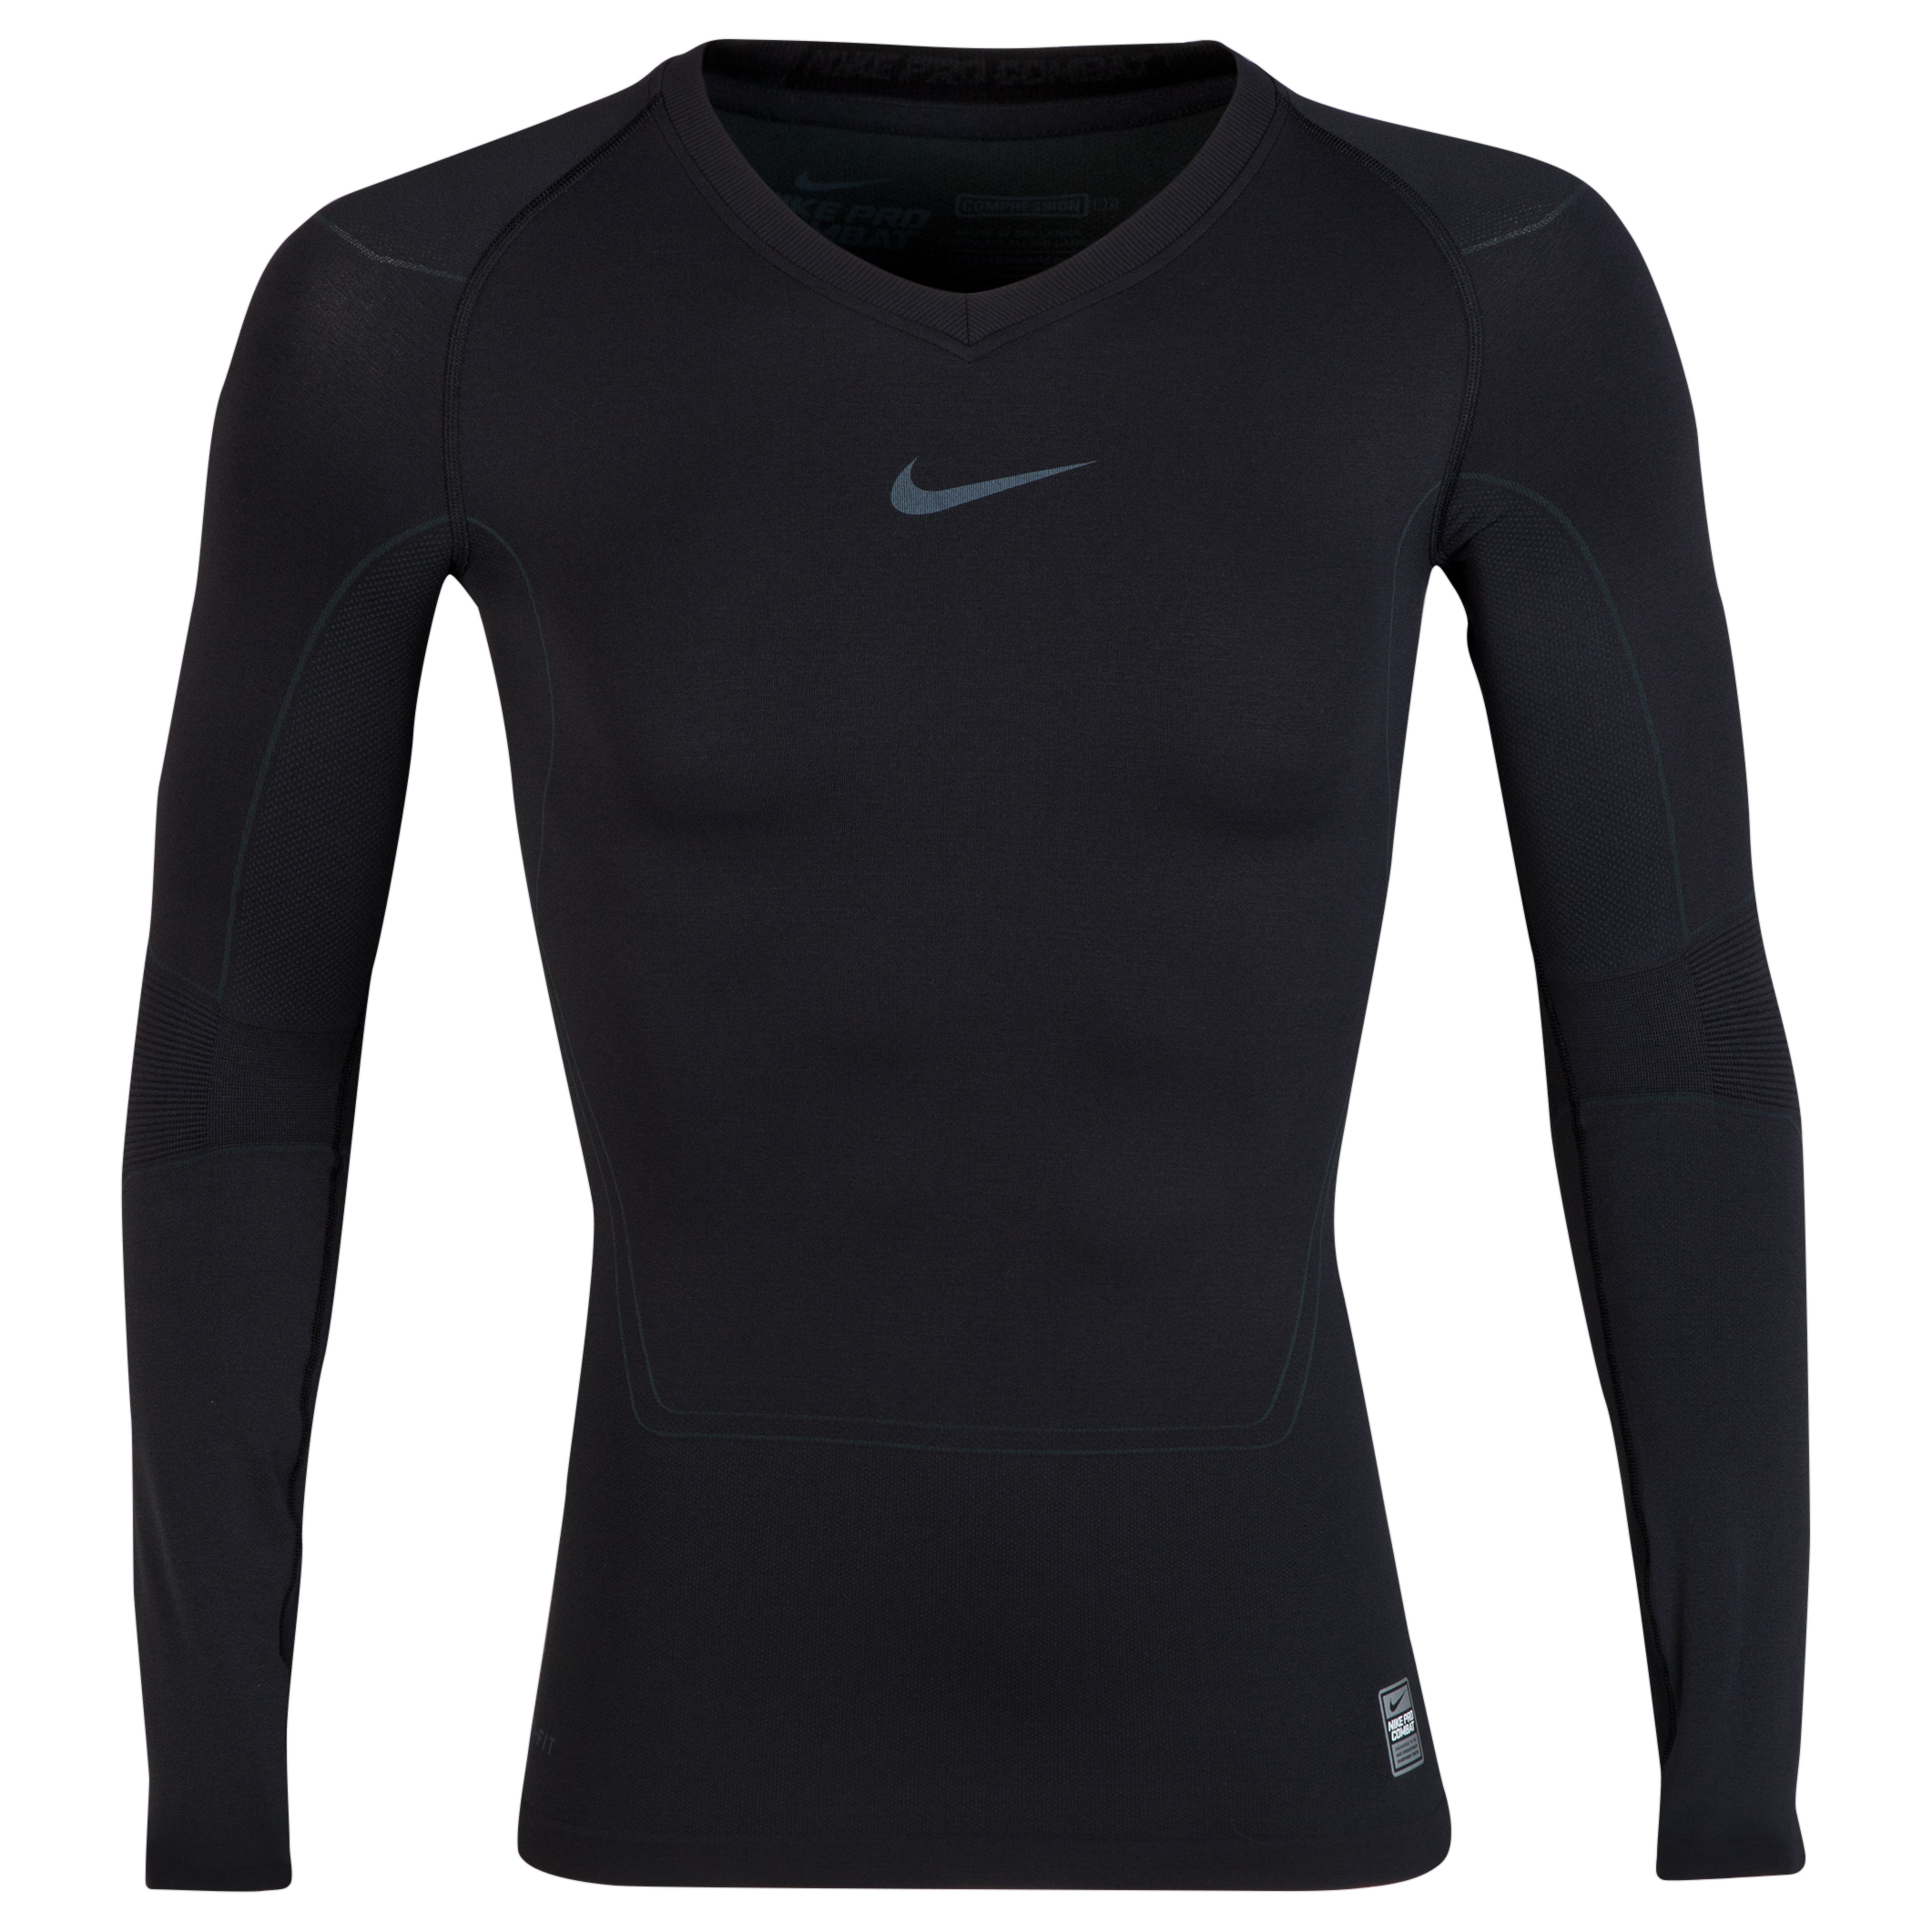 Nike Pro Combat Lightweight Seamless Base Layer Top - Long Sleeve Black